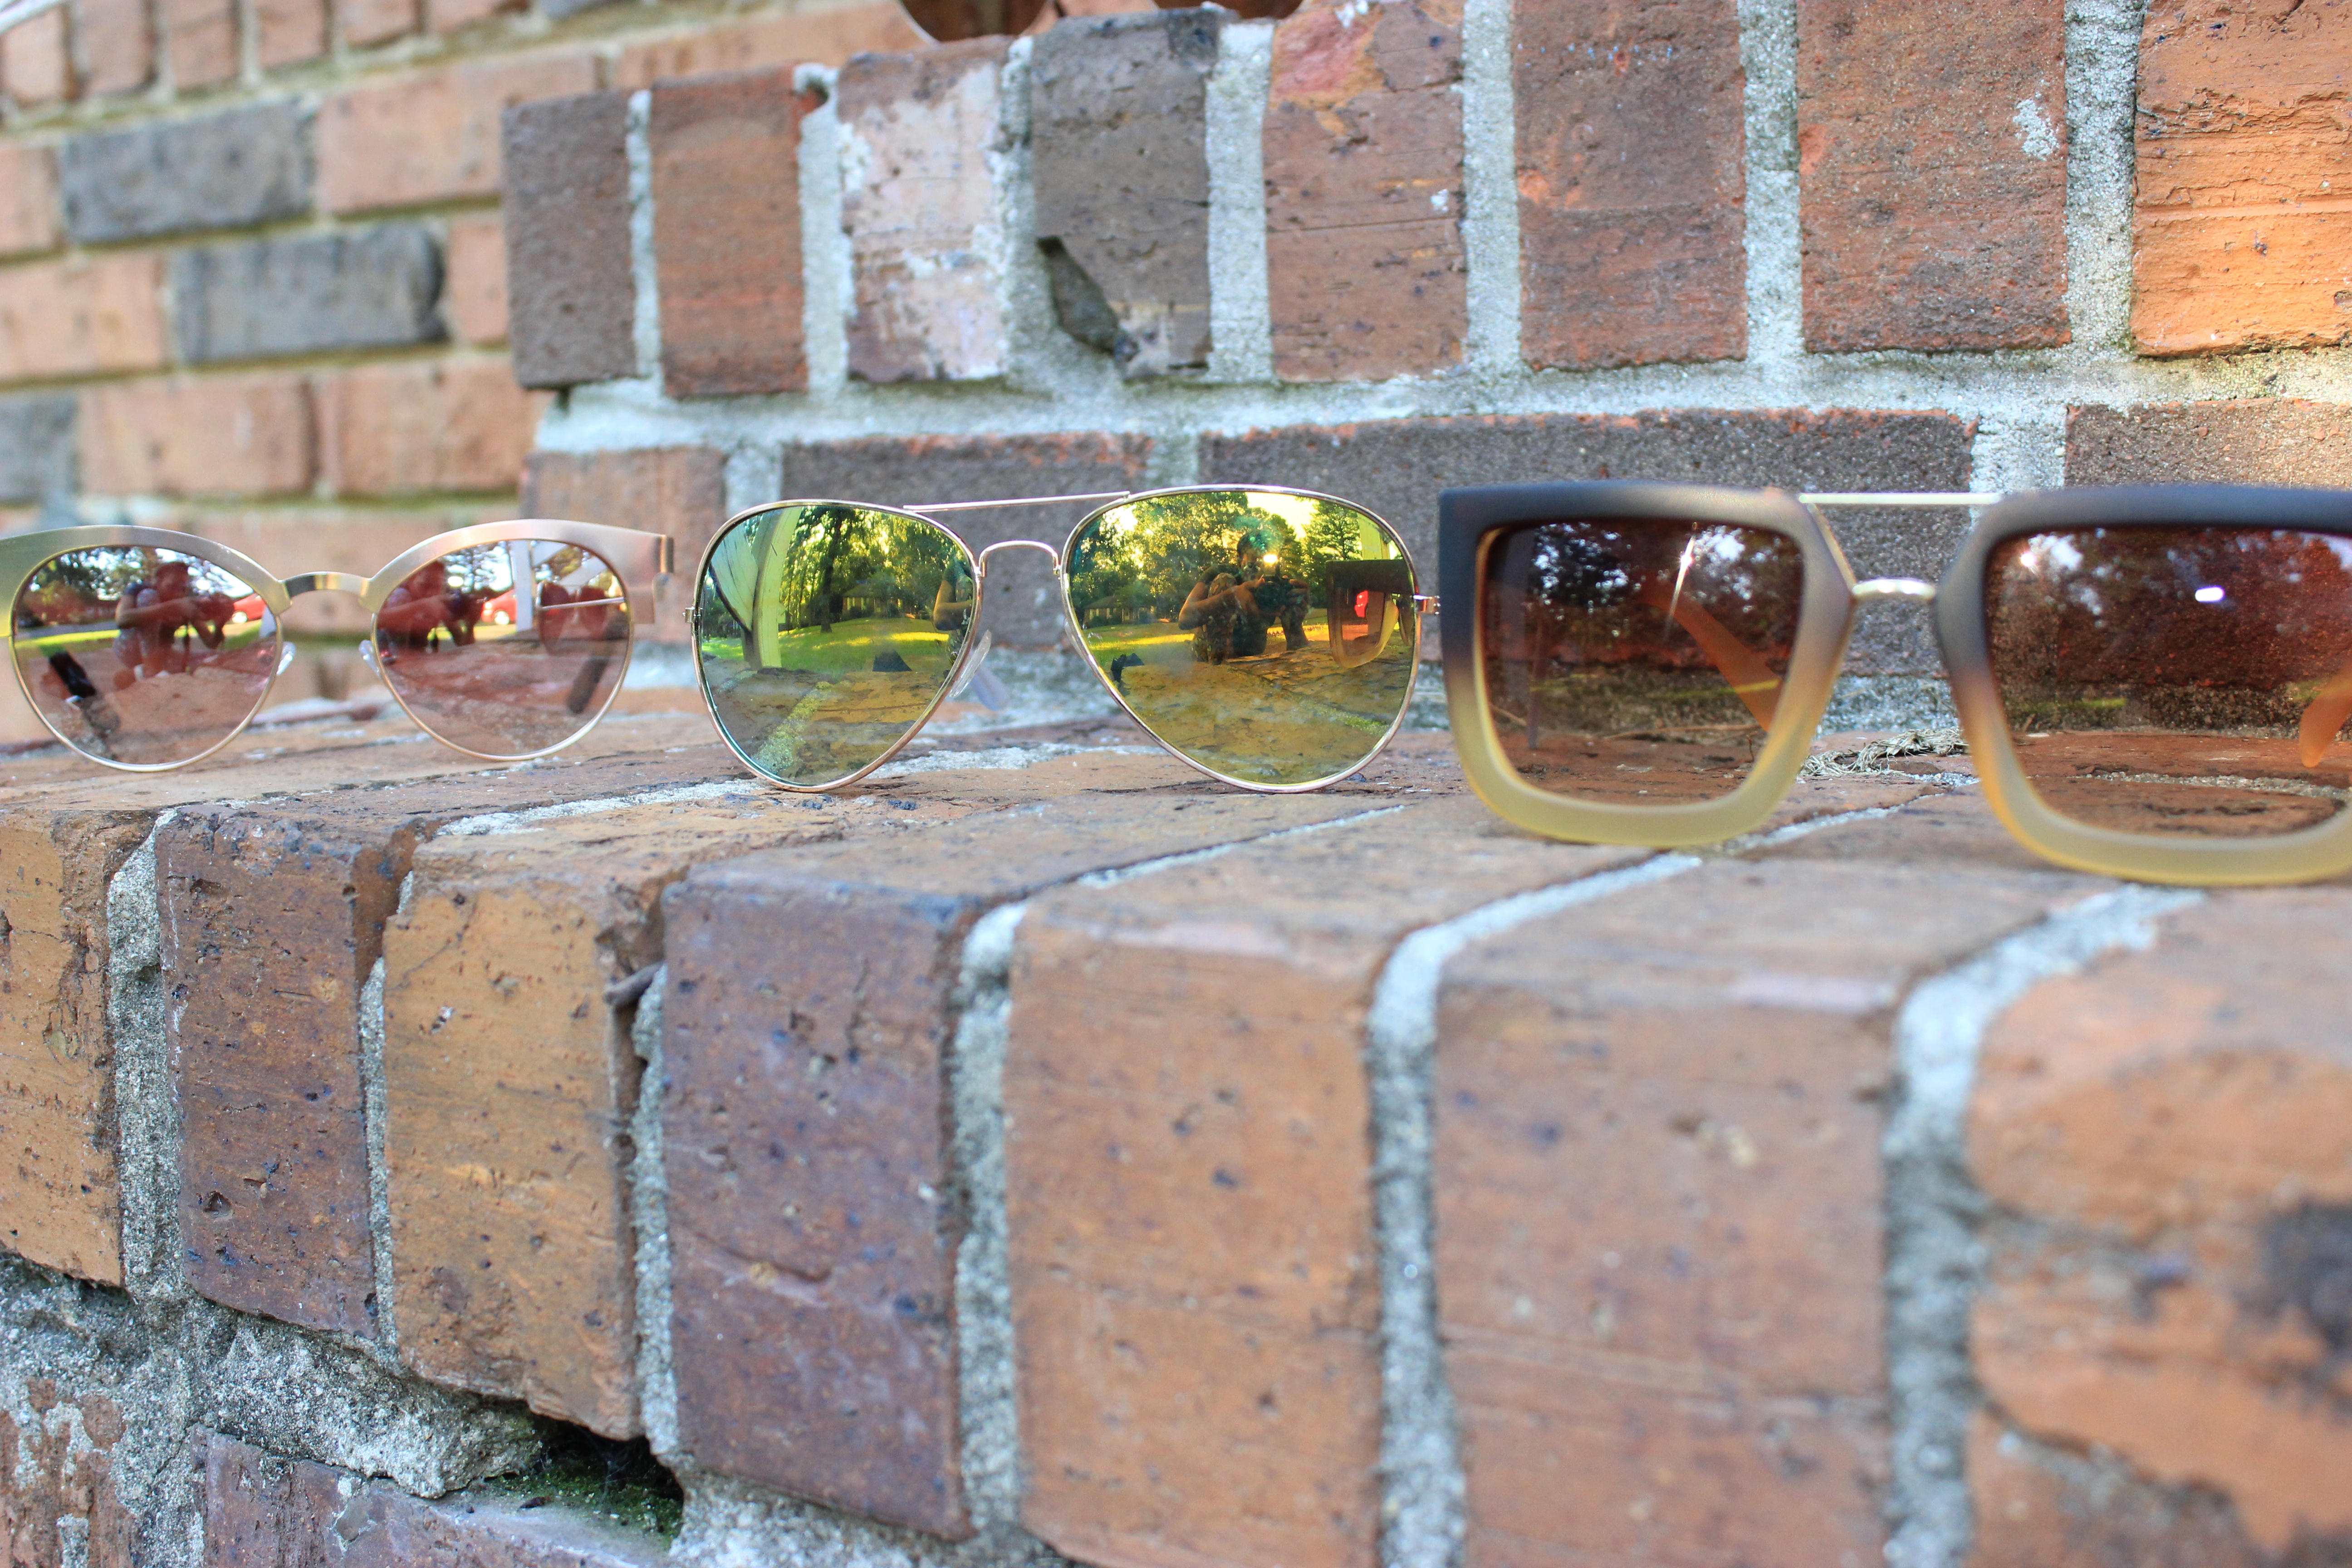 Style-Guide-Summer-Sunglasses-Summer-Sunglass-trends-2016-mirror-tinted-sunglasses-mirrored-ombre-effect-lenses-aviator-trend-2016-cat-eye-frame-sunglasses-2016-round-frame-sunglass-trend-thick-square-frame-sunglasses-Oohlalablog-18